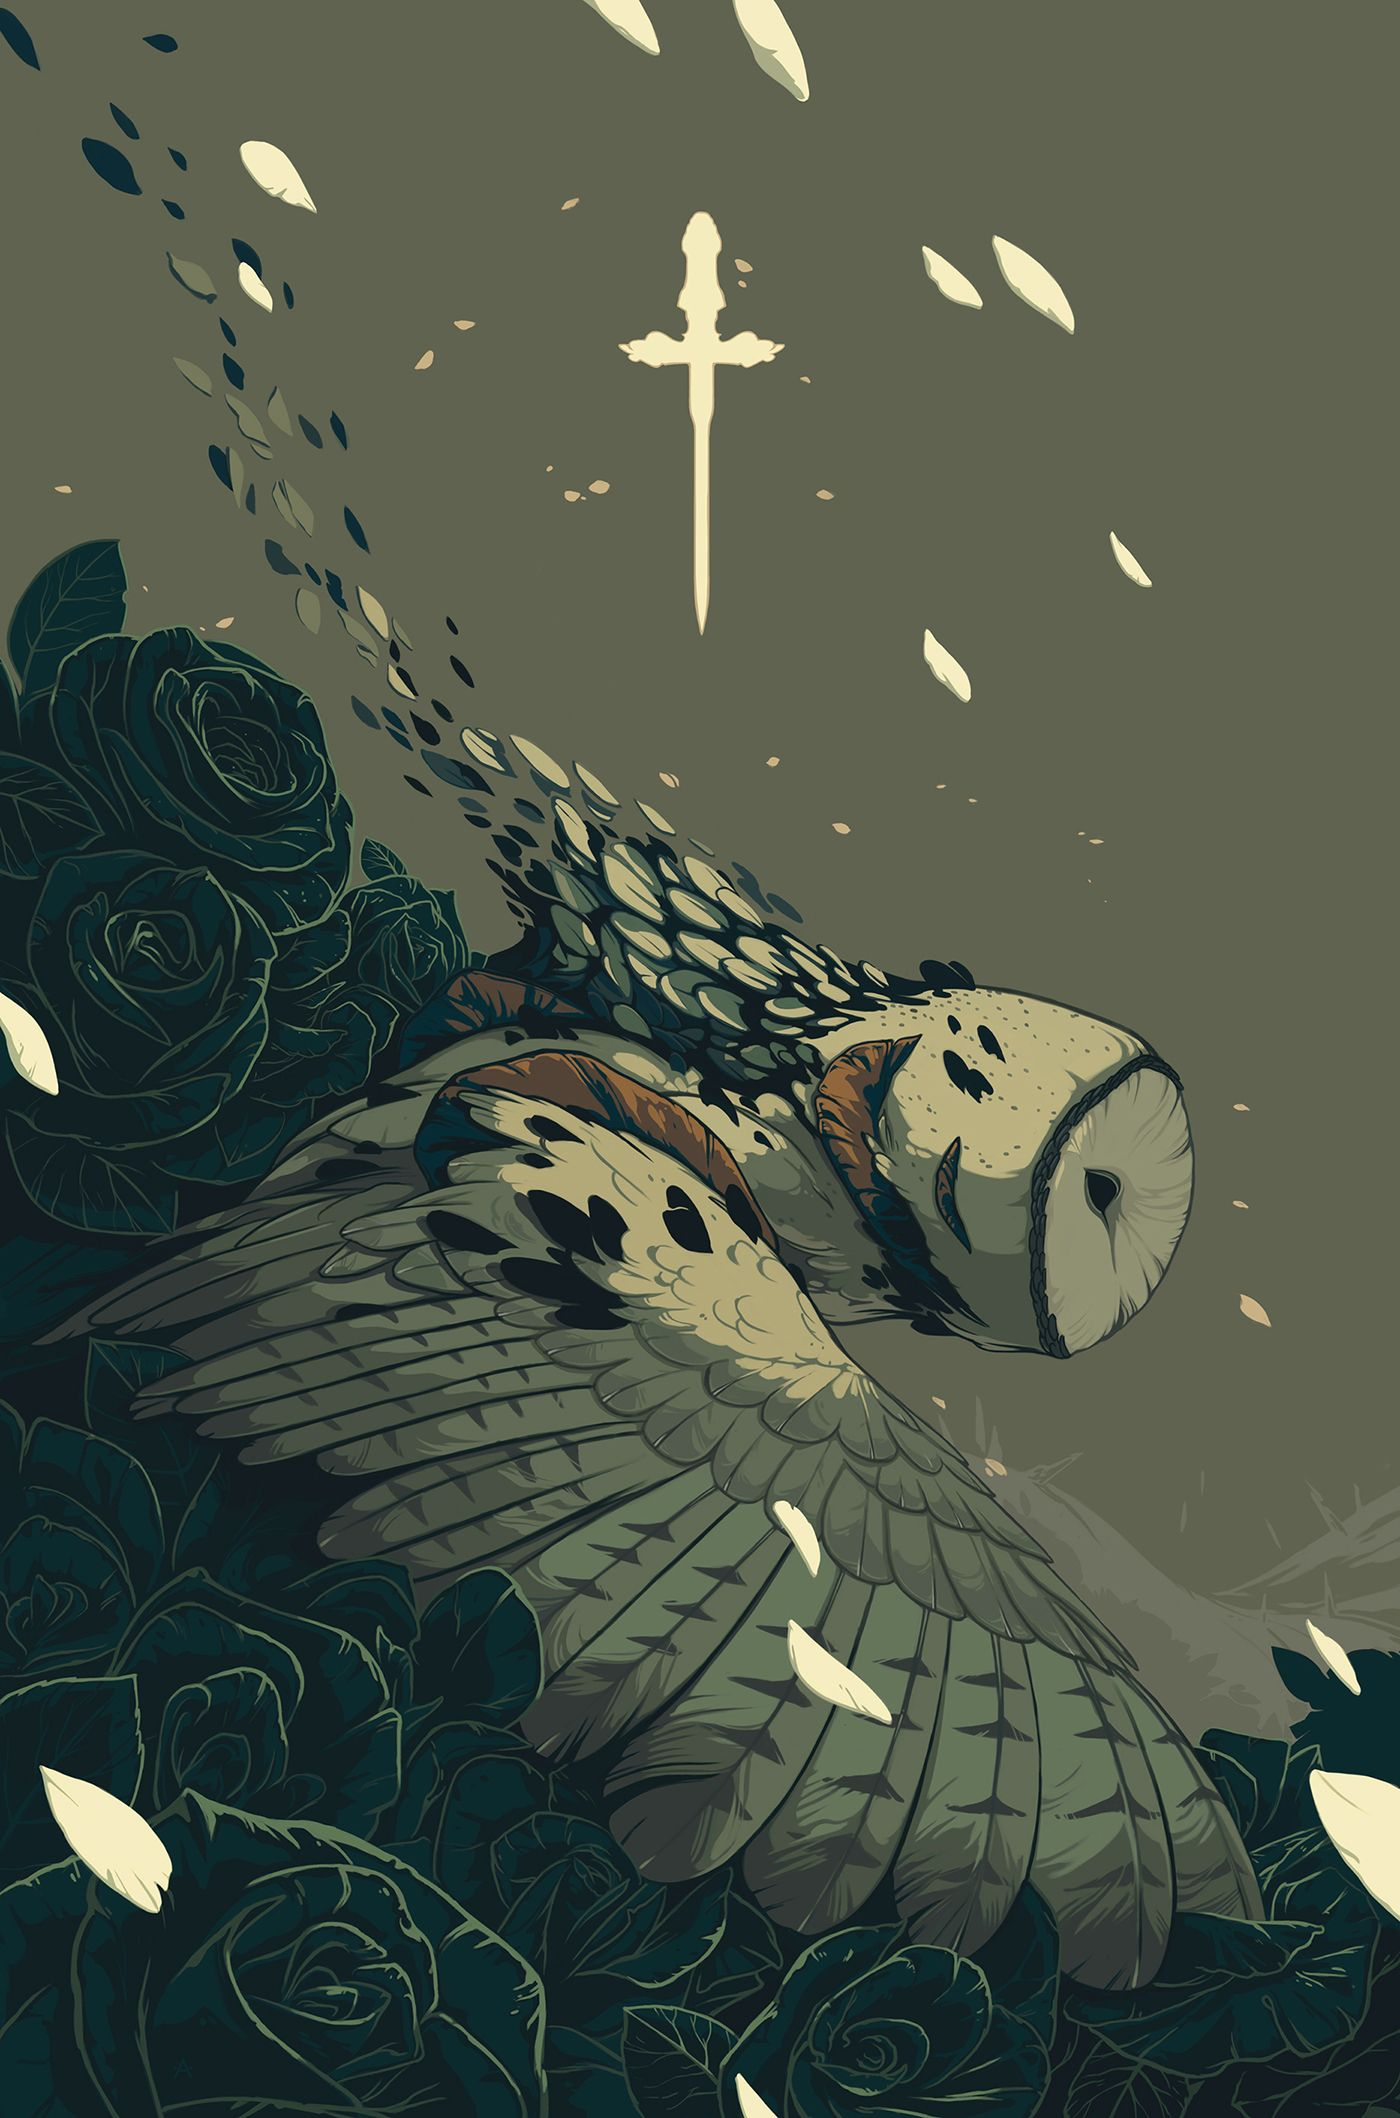 Purge by Alex Dos Diaz #illustration #owl